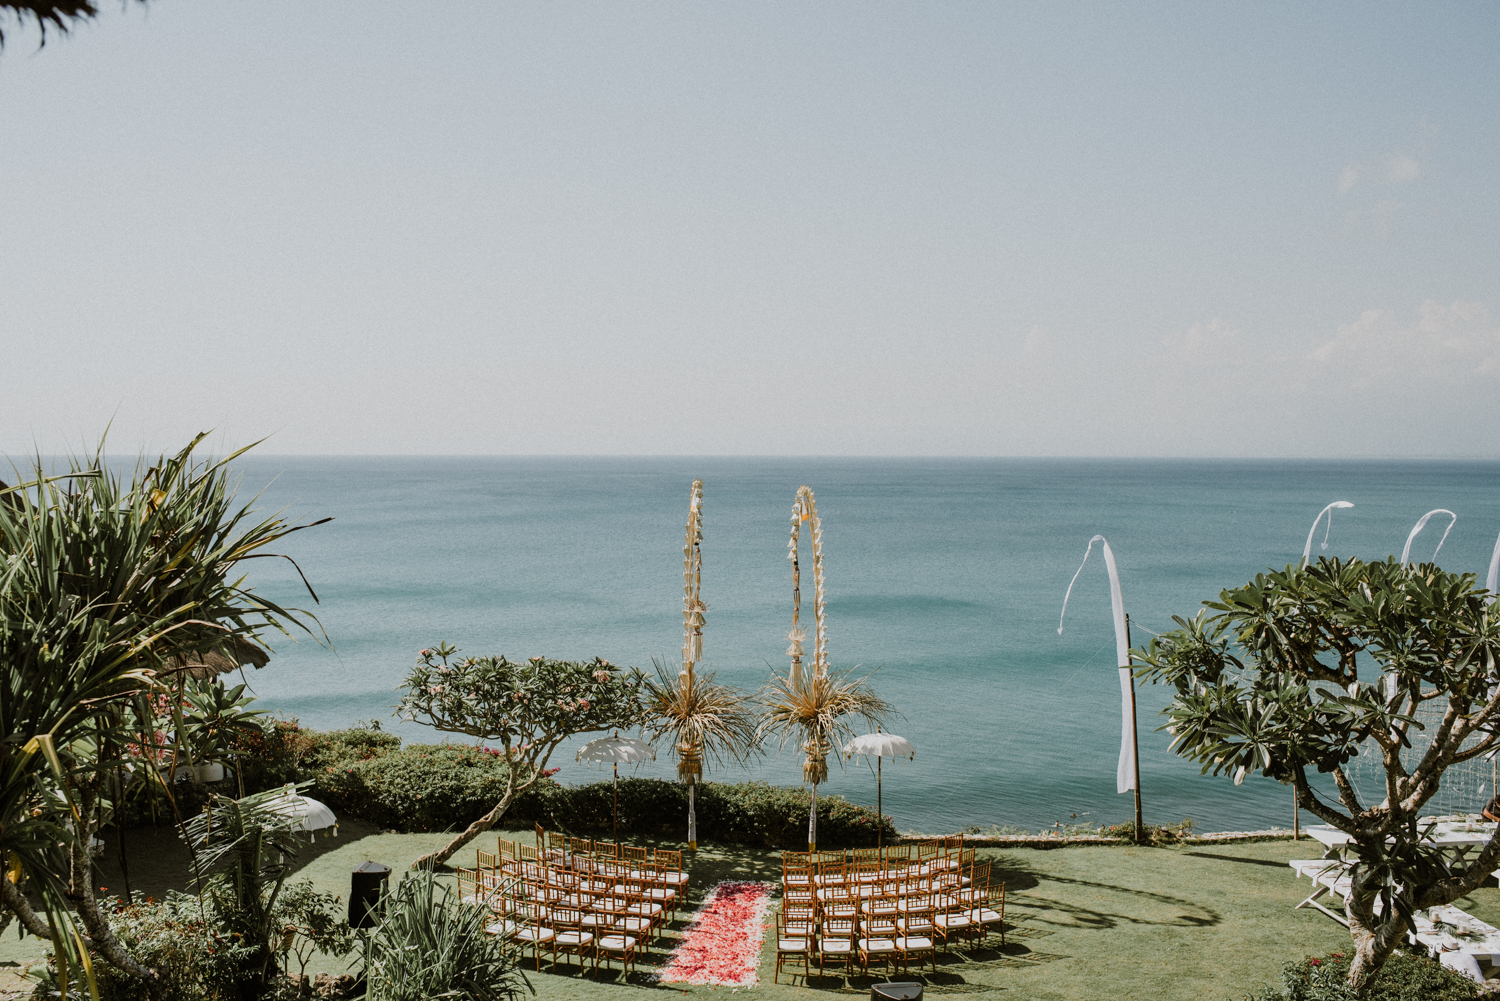 baliweddingdestination-weddinginbali-baliweddingphotographer-diktatphotography-bayuhsabbha-uluwatu-bali-31